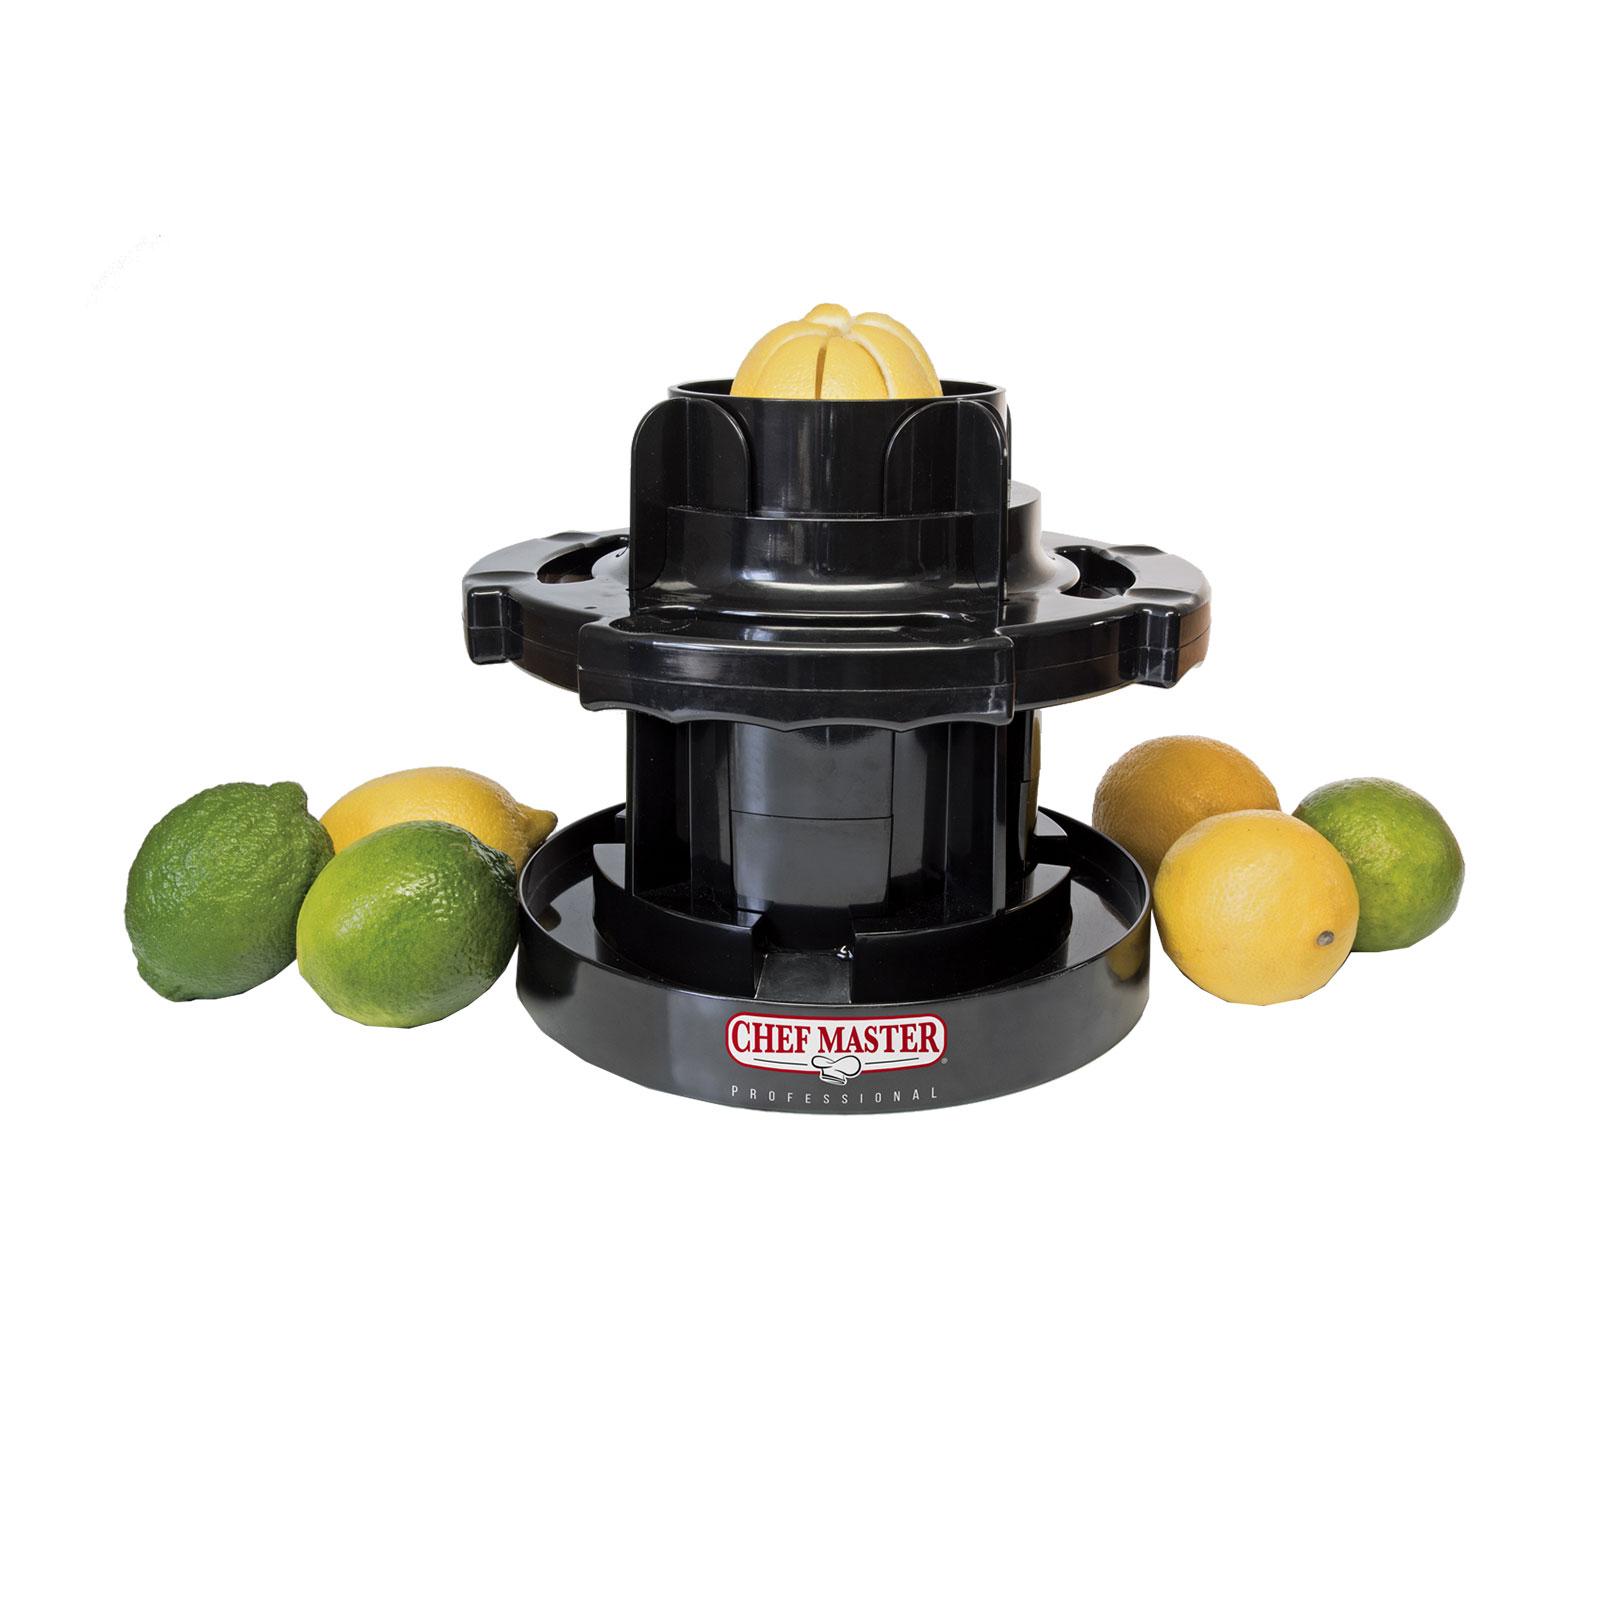 Chef Master 90023 fruit / vegetable wedger